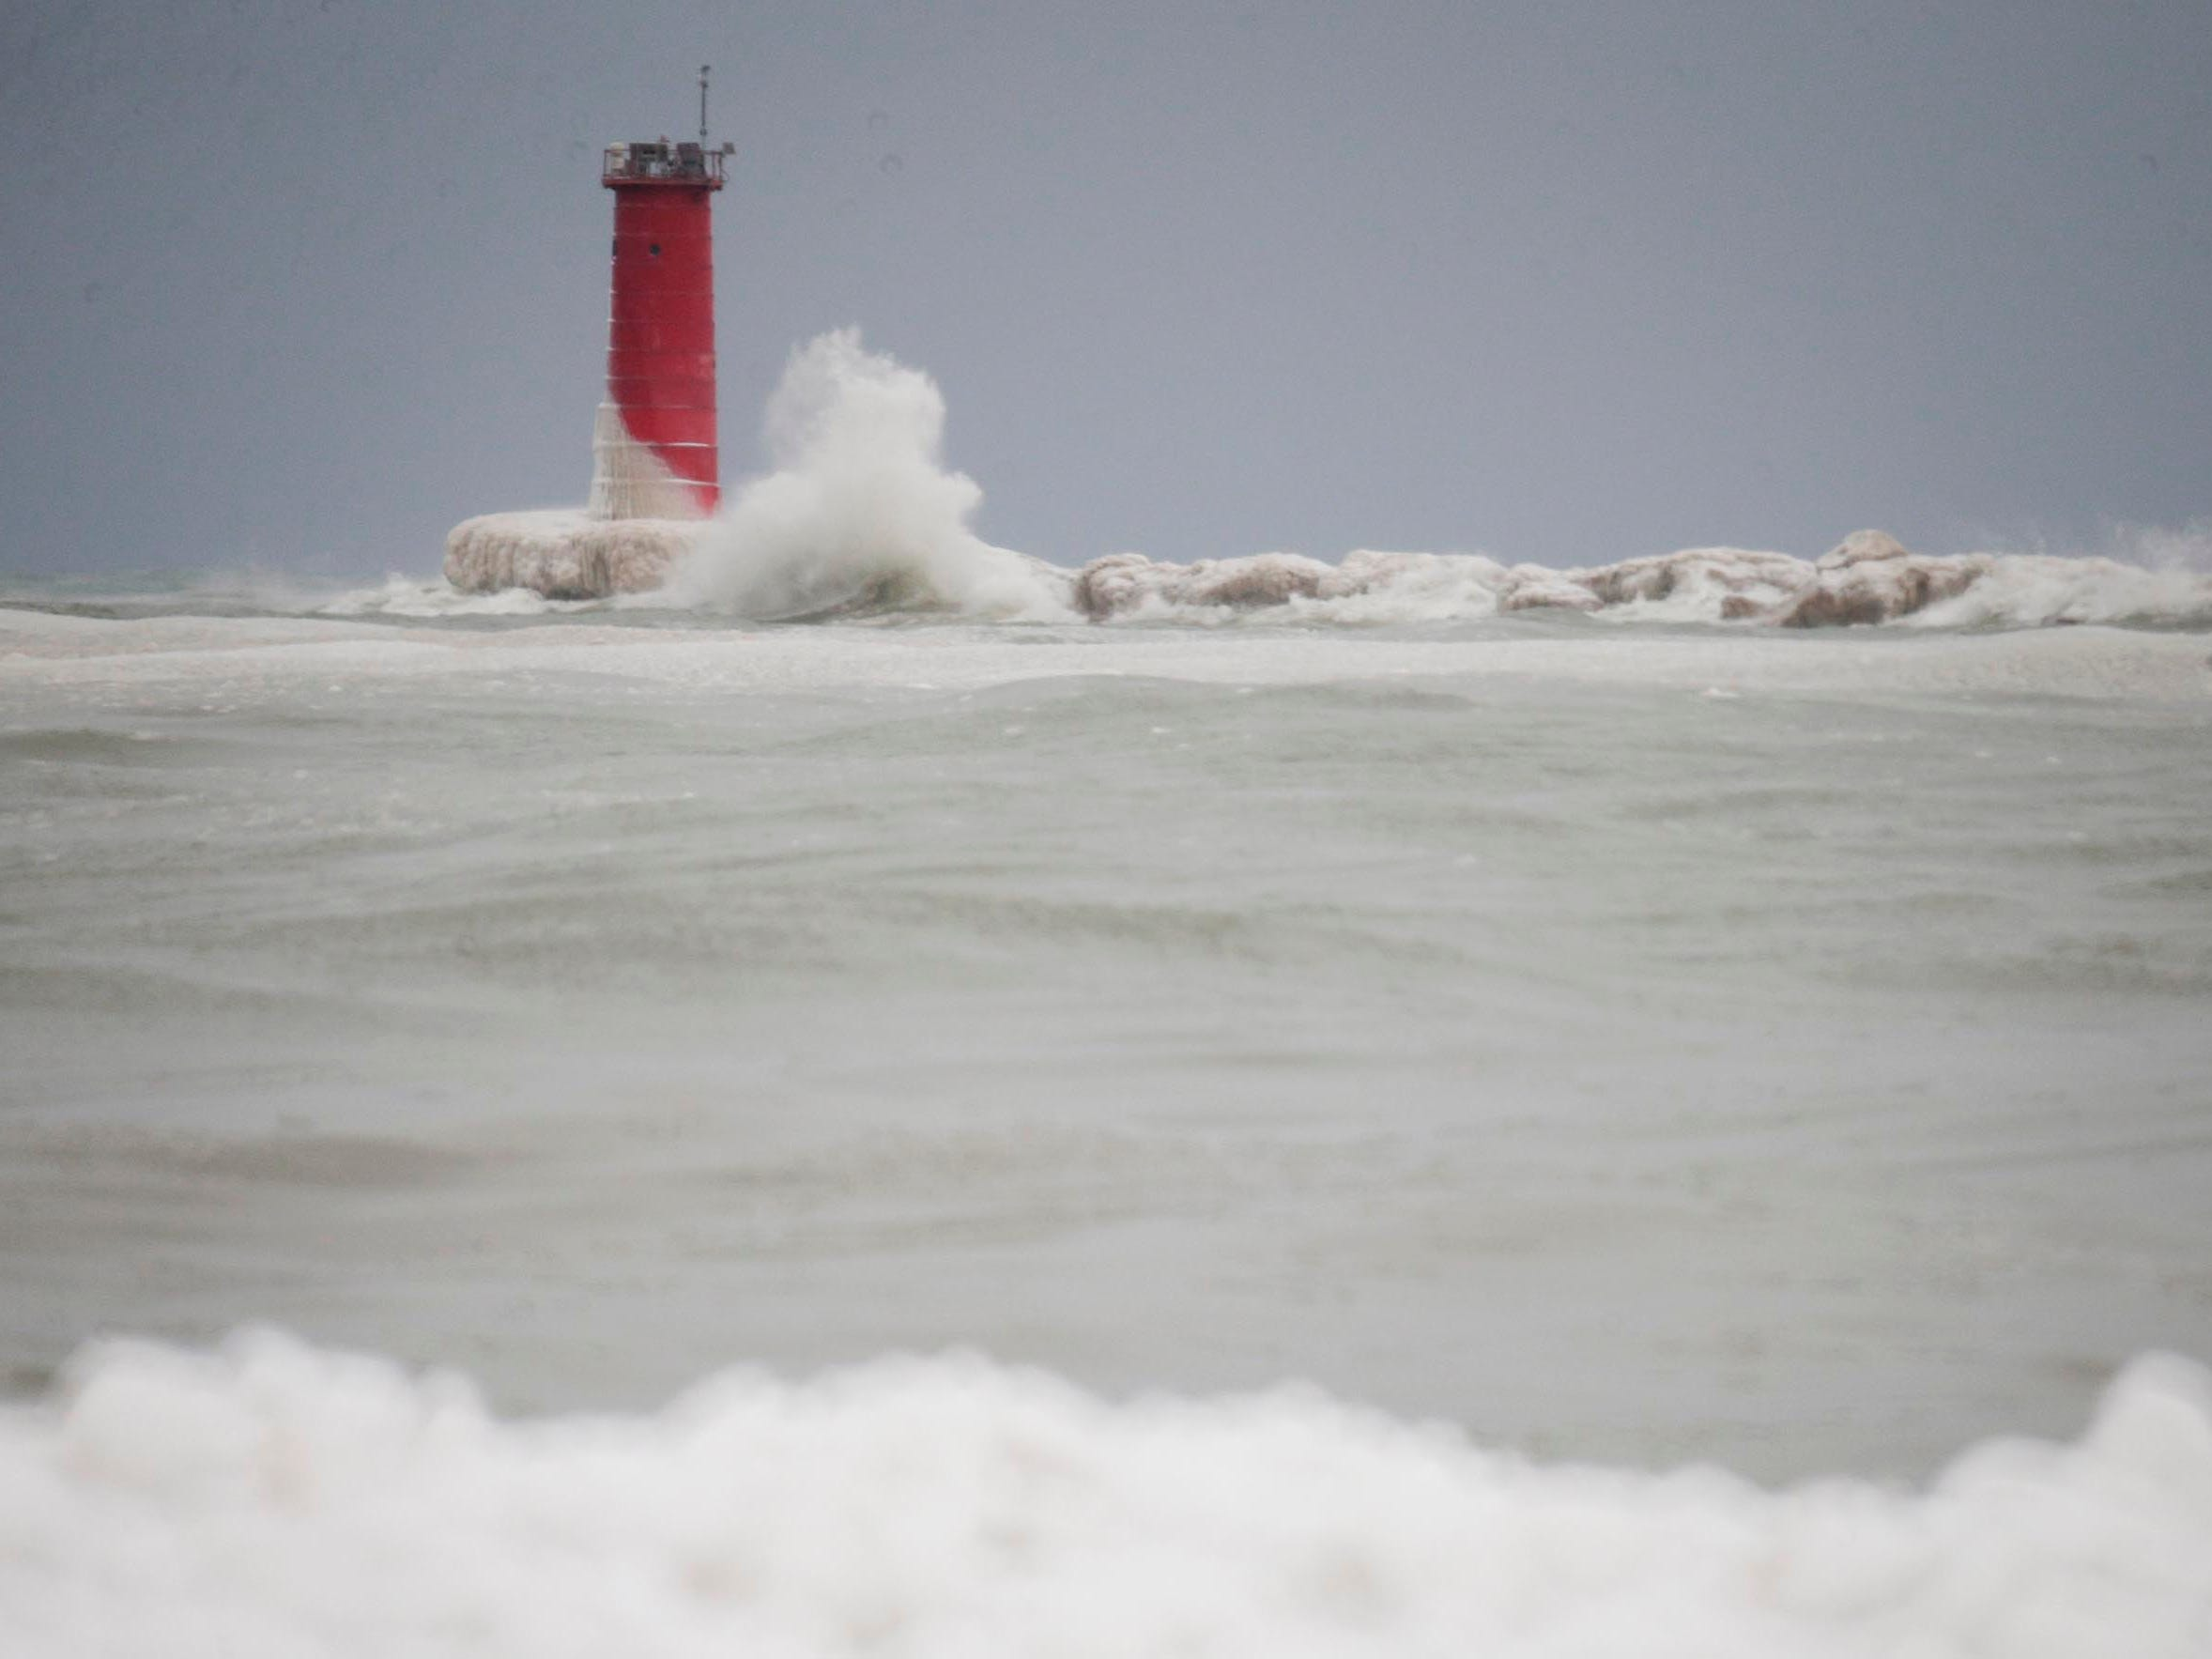 Waves crash on the Sheboygan lighthouse, Tuesday, February 12, 2019, in Sheboygan, Wis. A winter storm dumped snow on the city and stirred up Lake Michigan.